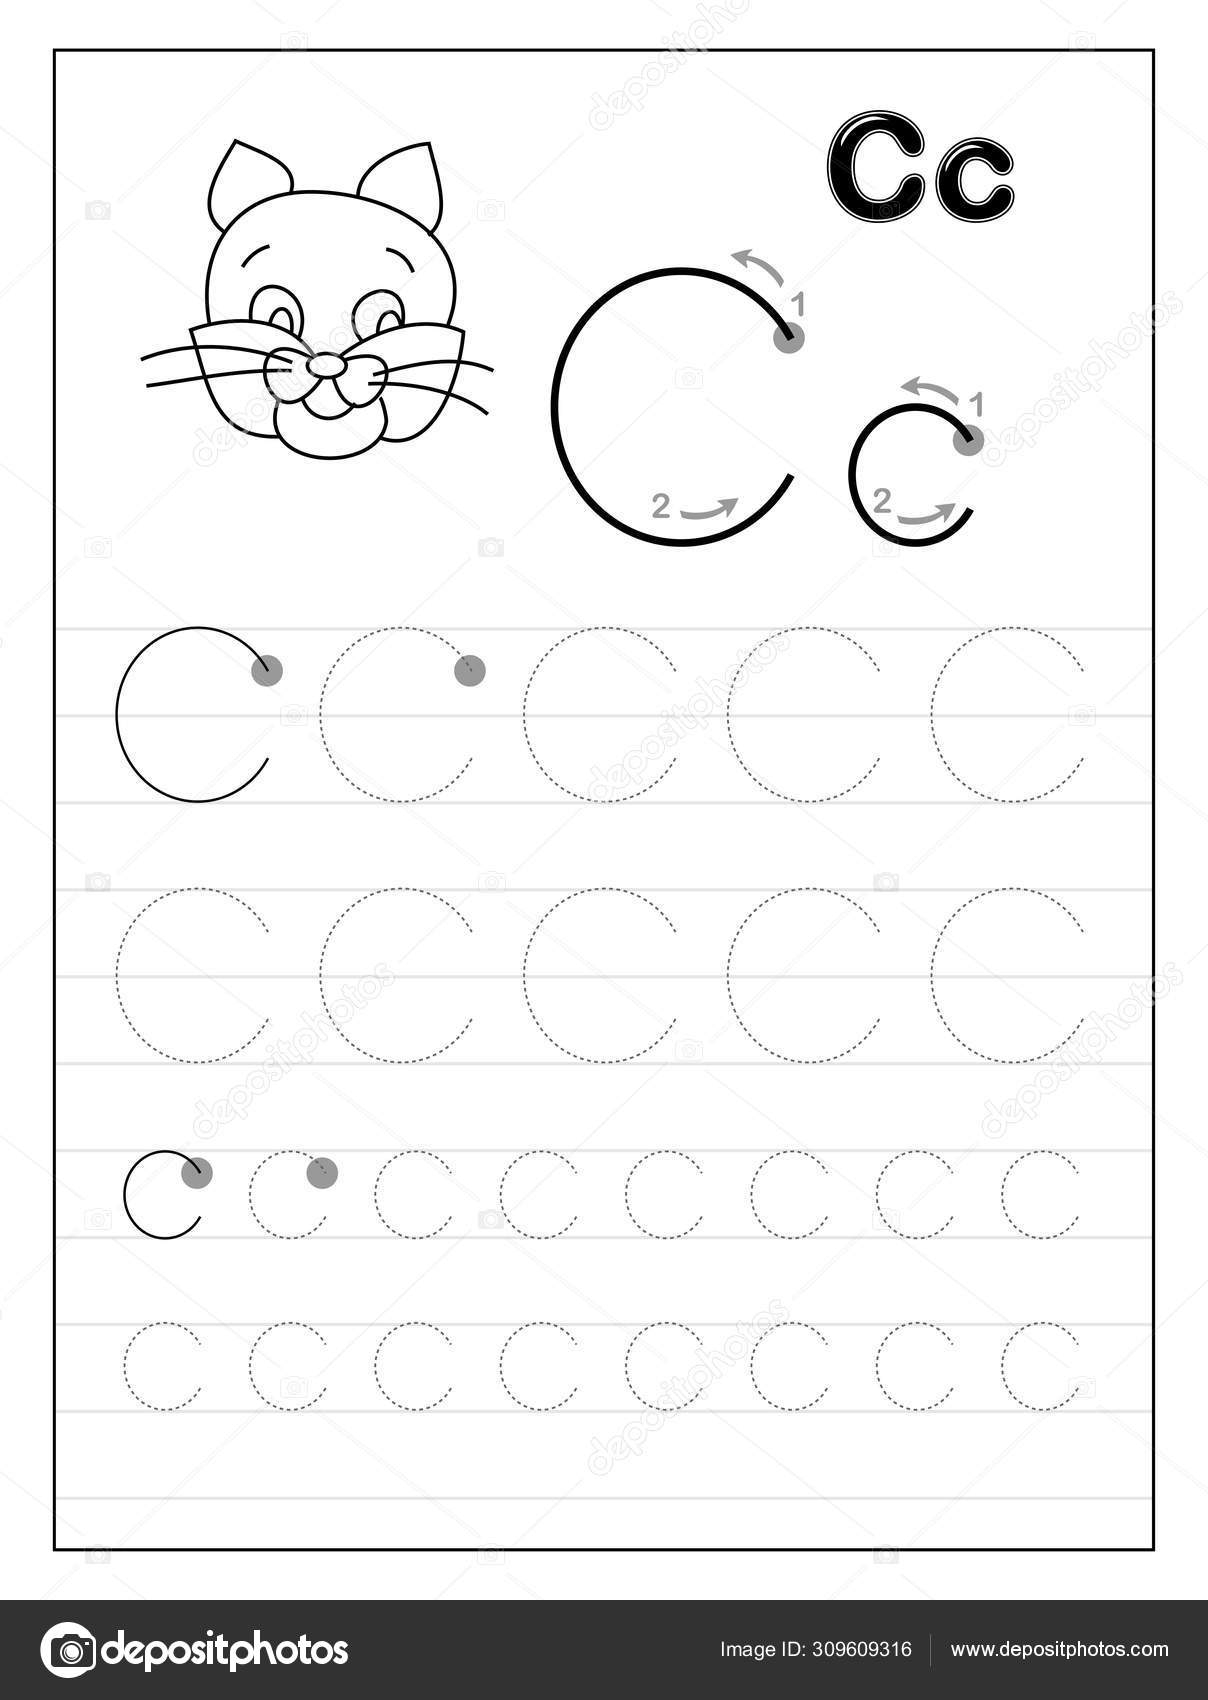 Tracing Alphabet Letter C. Black And White Educational Pages On Line For  Kids. Printable Worksheet For Children Textbook. Developing Skills Of within Letter C Tracing Printable